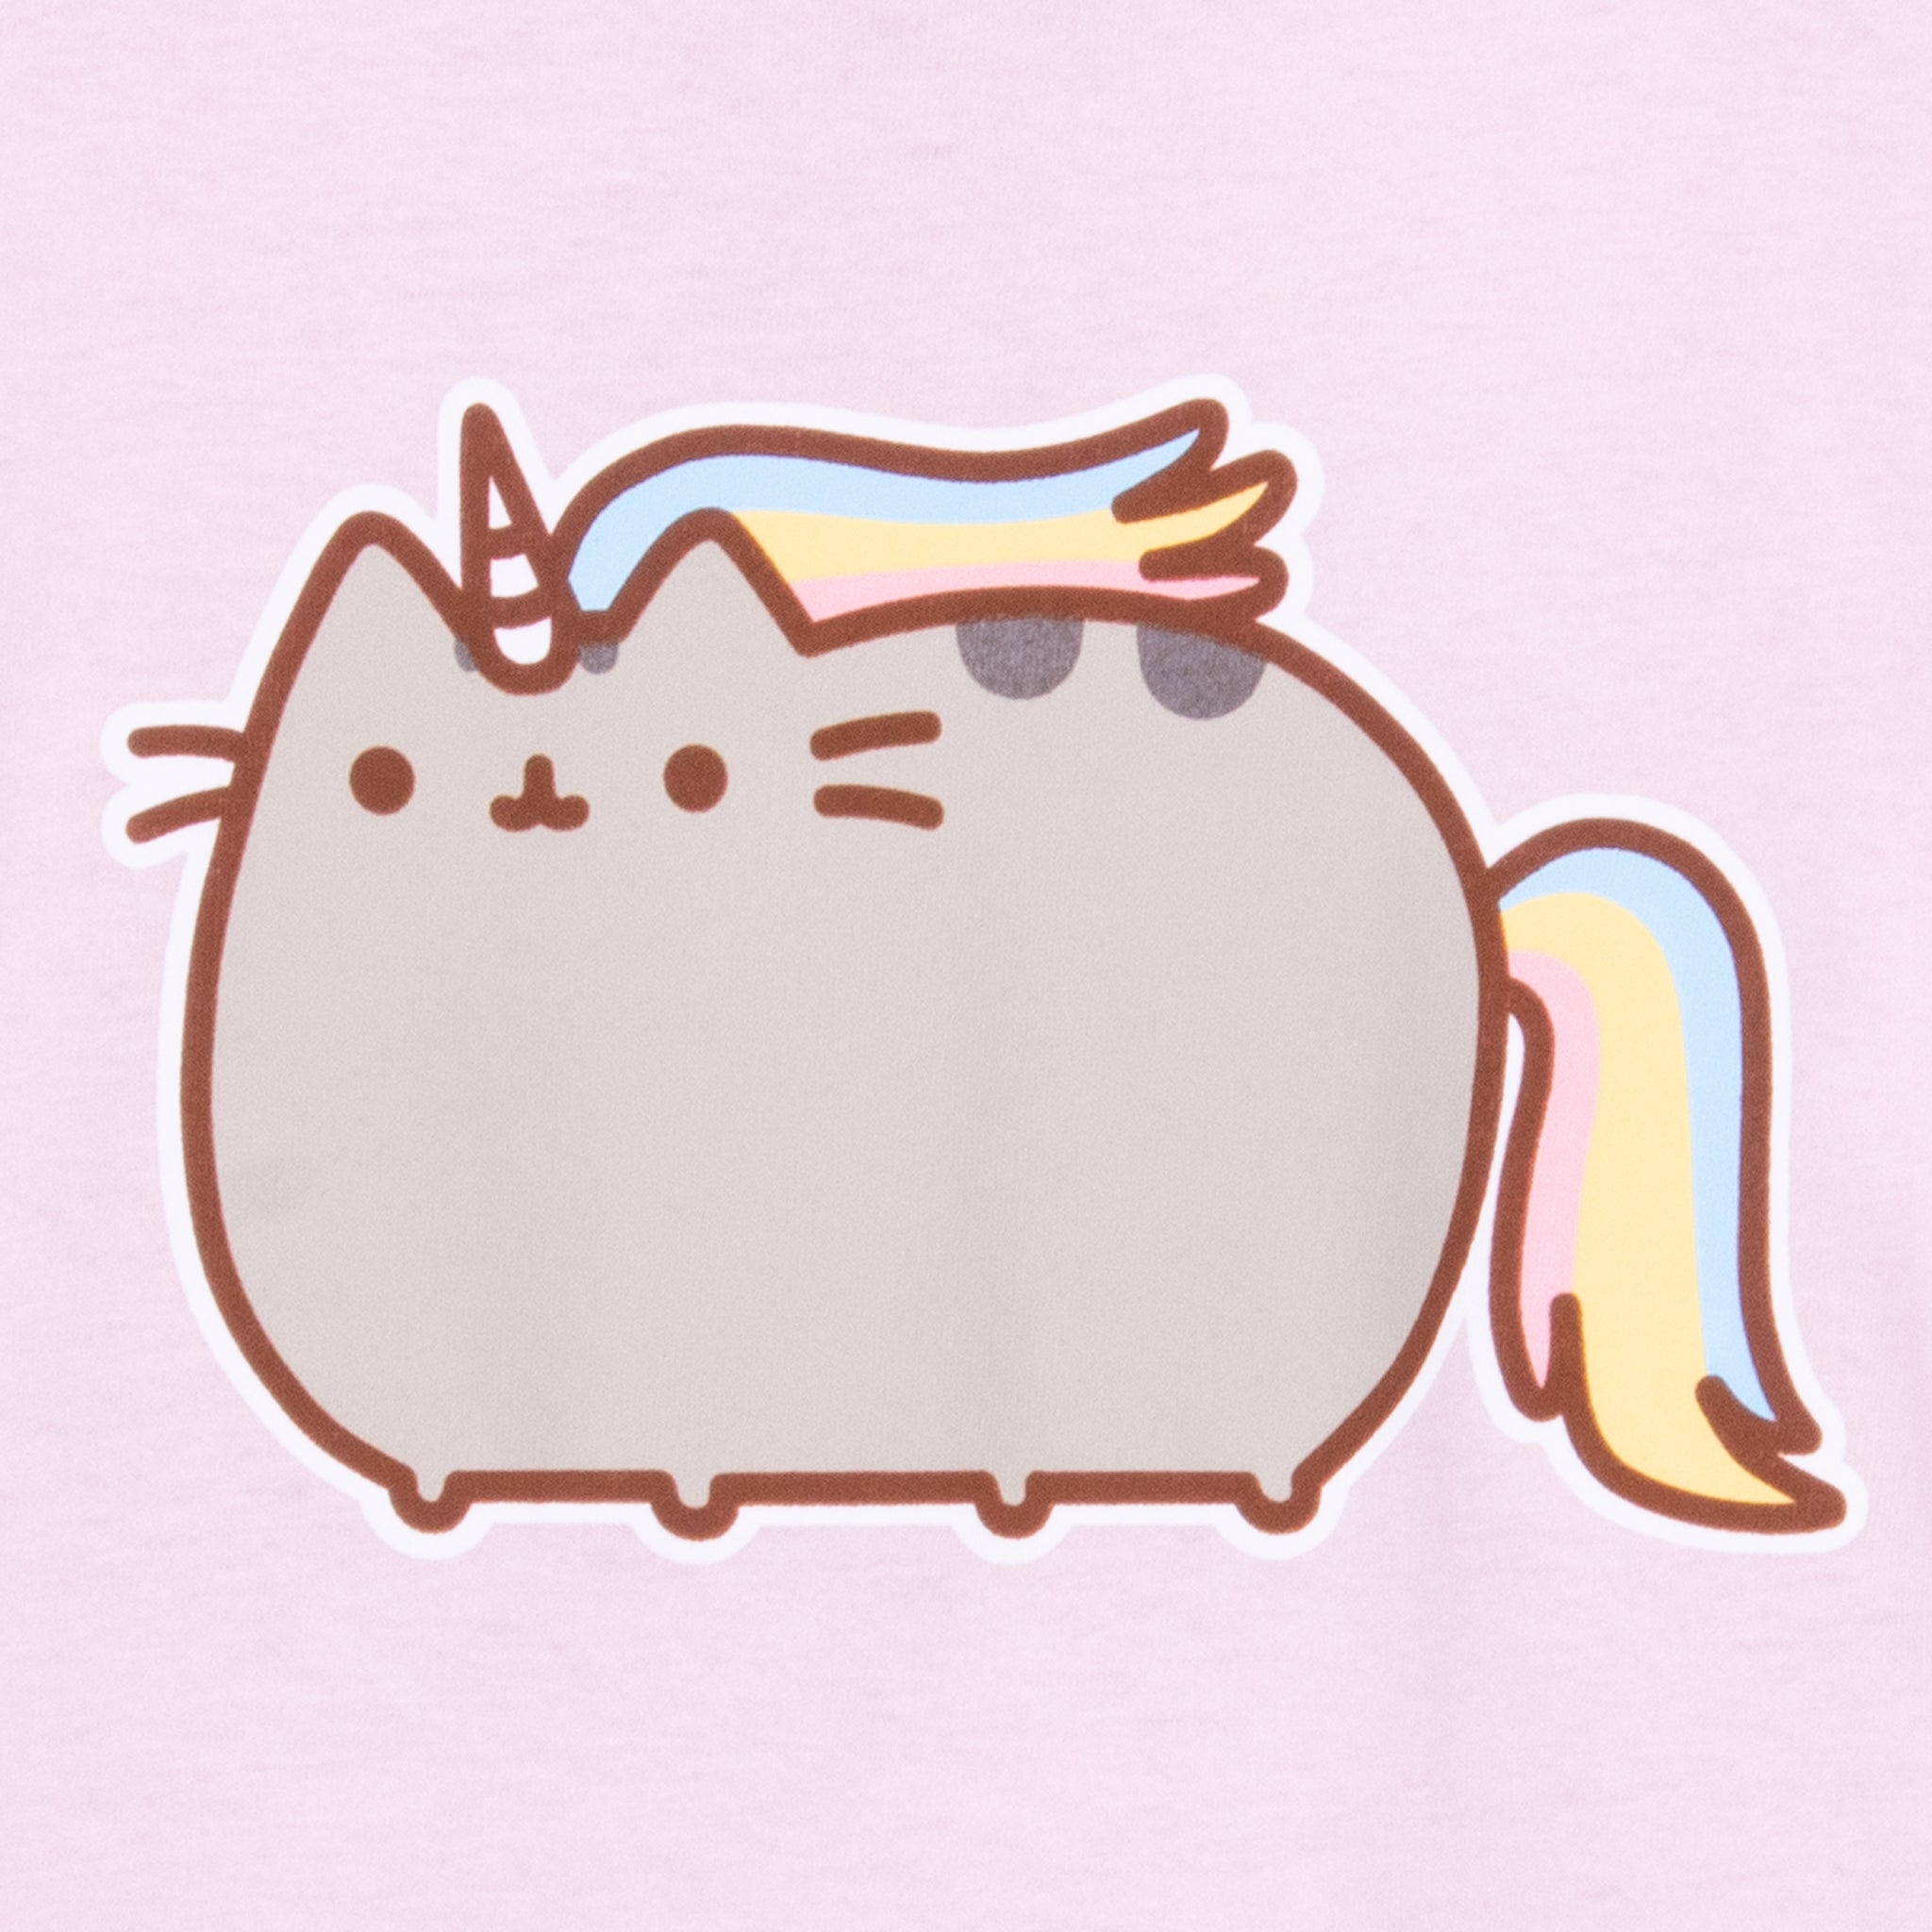 pusheen t-shirt shirt apparel unicorn pusheenicorn graphic cute cat culturefly